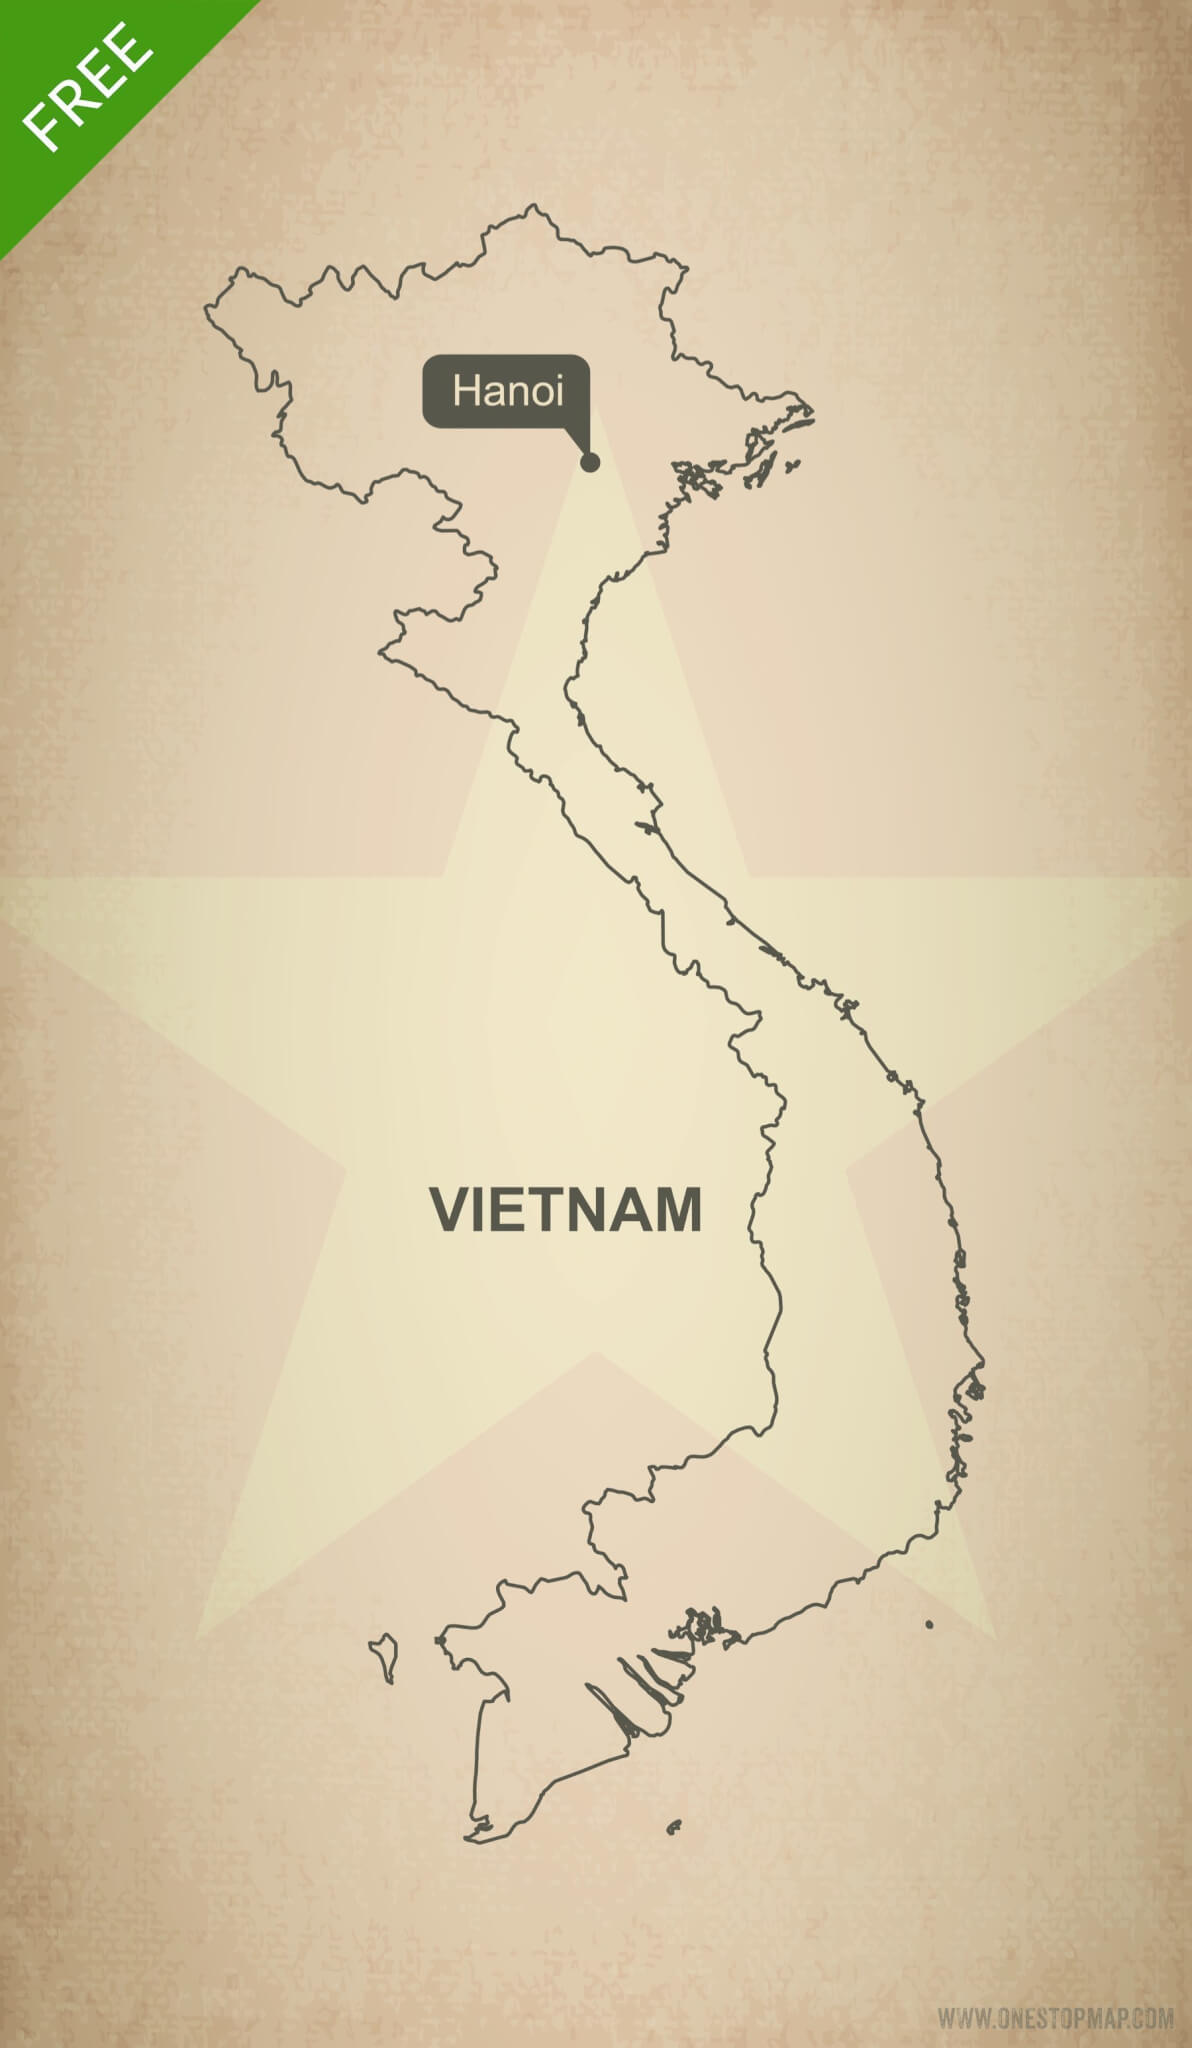 Free Vector Map Of Vietnam Outline One Stop Map - Vietnam map outline